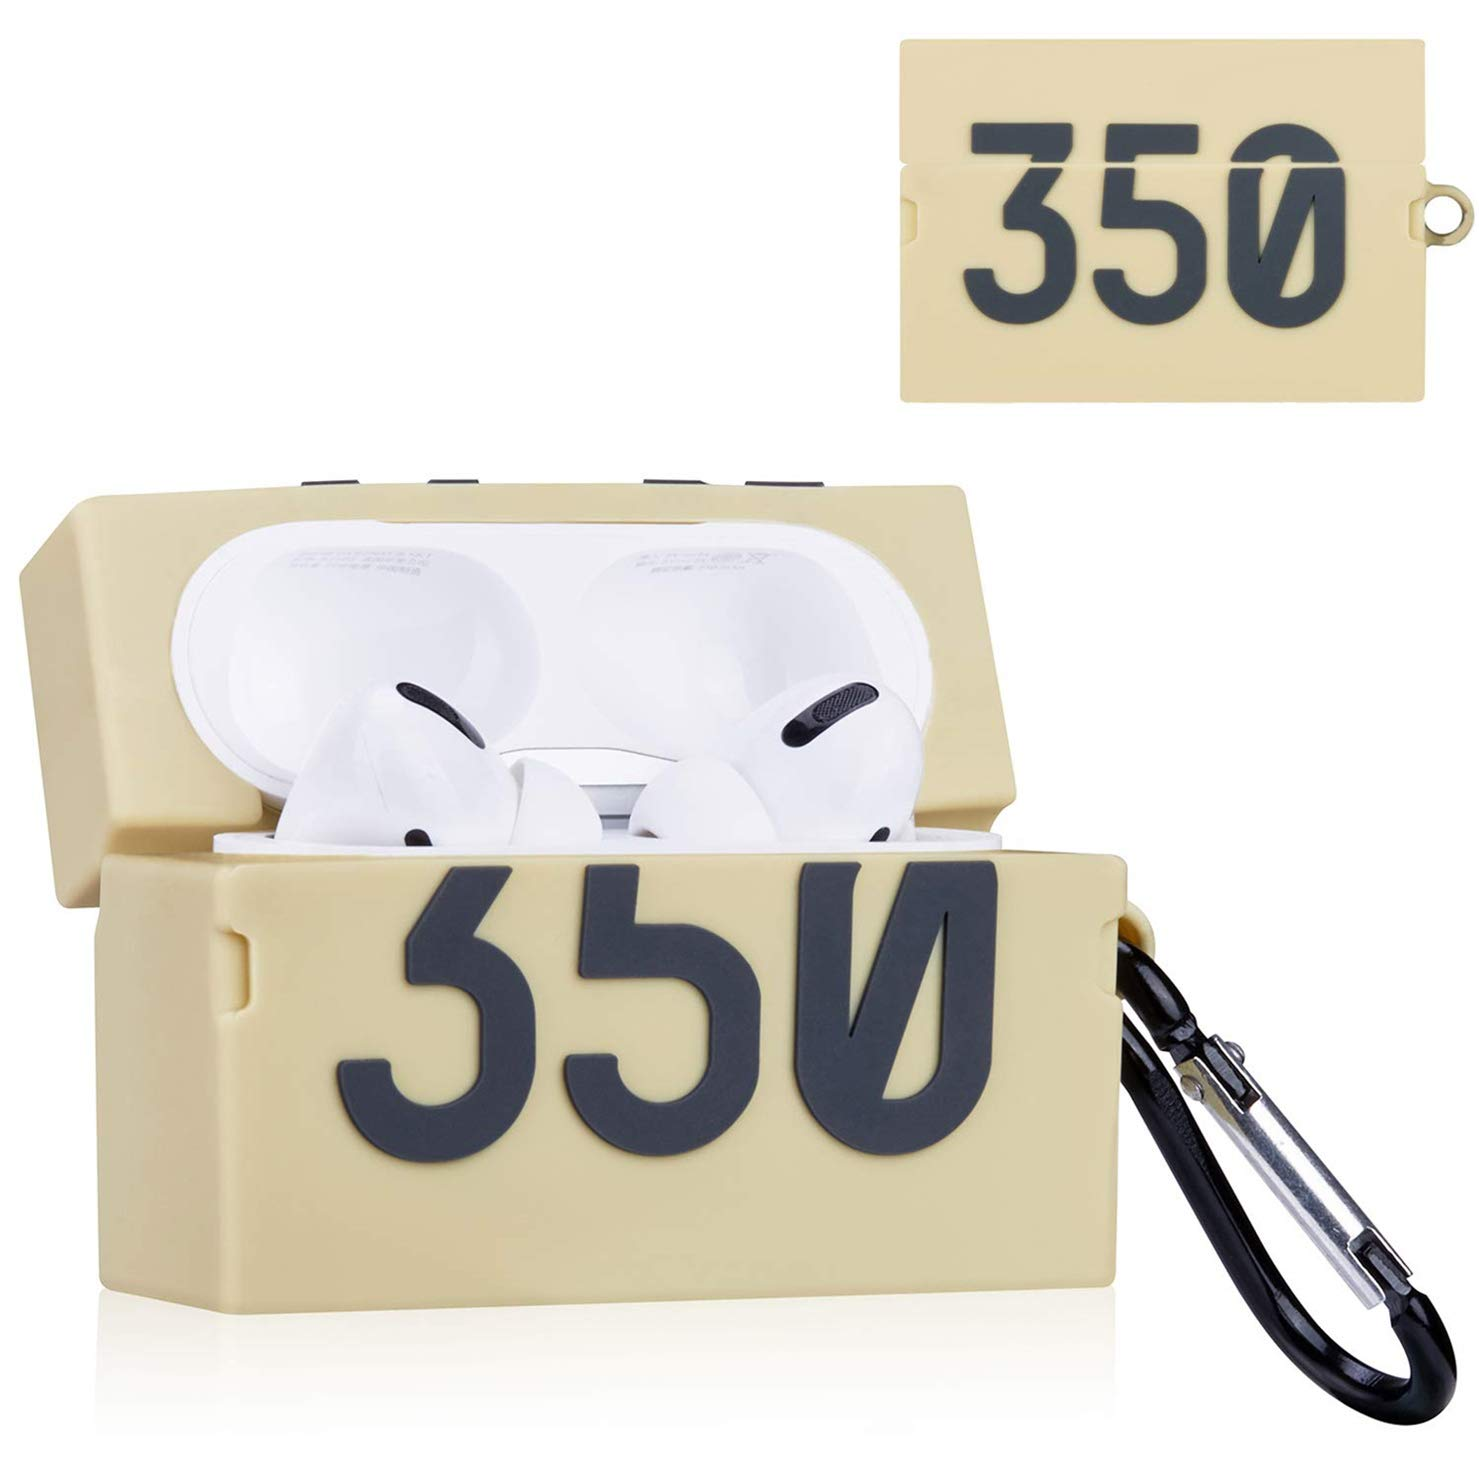 Gift-Hero for Airpods Pro/3 Case Soft Silicone, Cute 3D Luxury Funny Air pods Cover Stylish Sports Design Shockproof Protective Carabiner Skin Cases for Men Boys Teens Airpod 3 (350 Box)